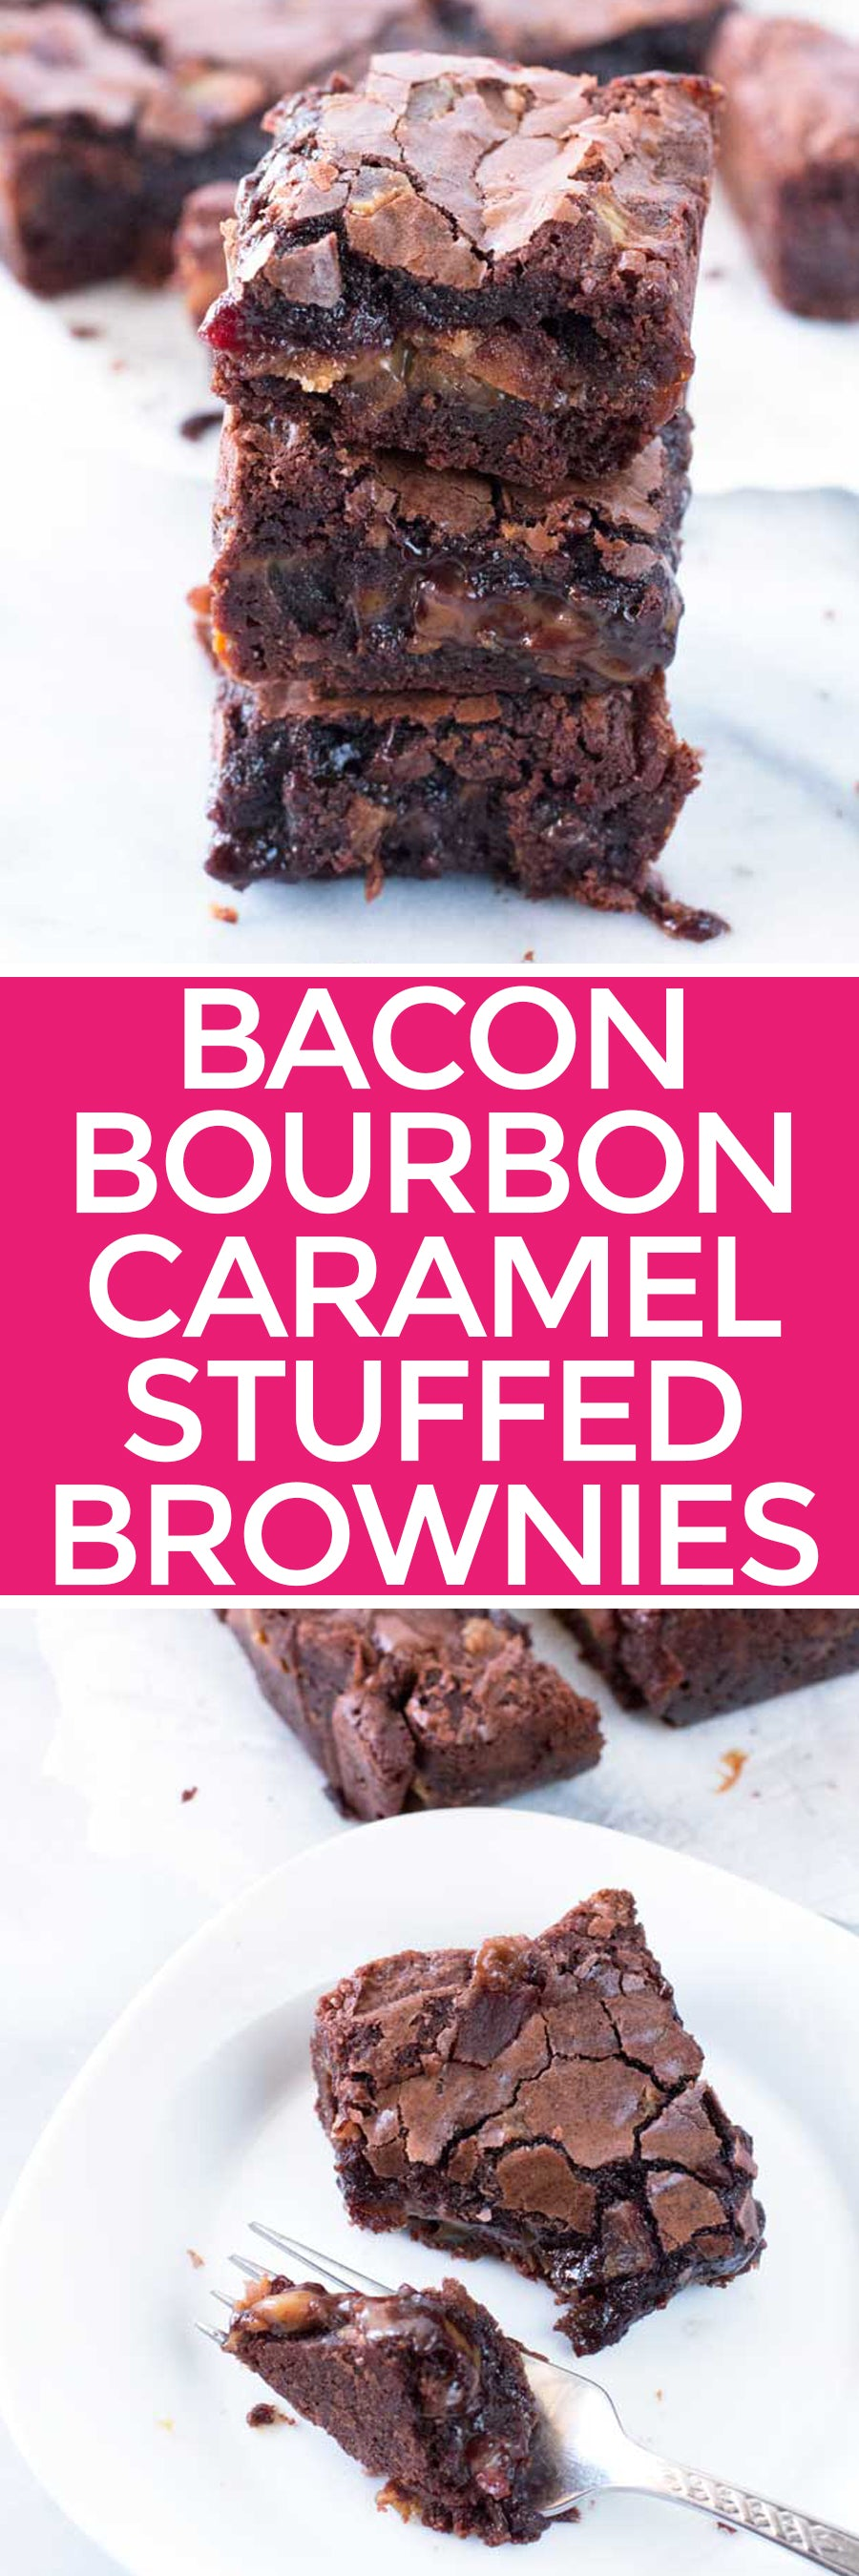 Bacon Bourbon Caramel Stuffed Brownies | pigofthemonth.com #chocolate #dessert